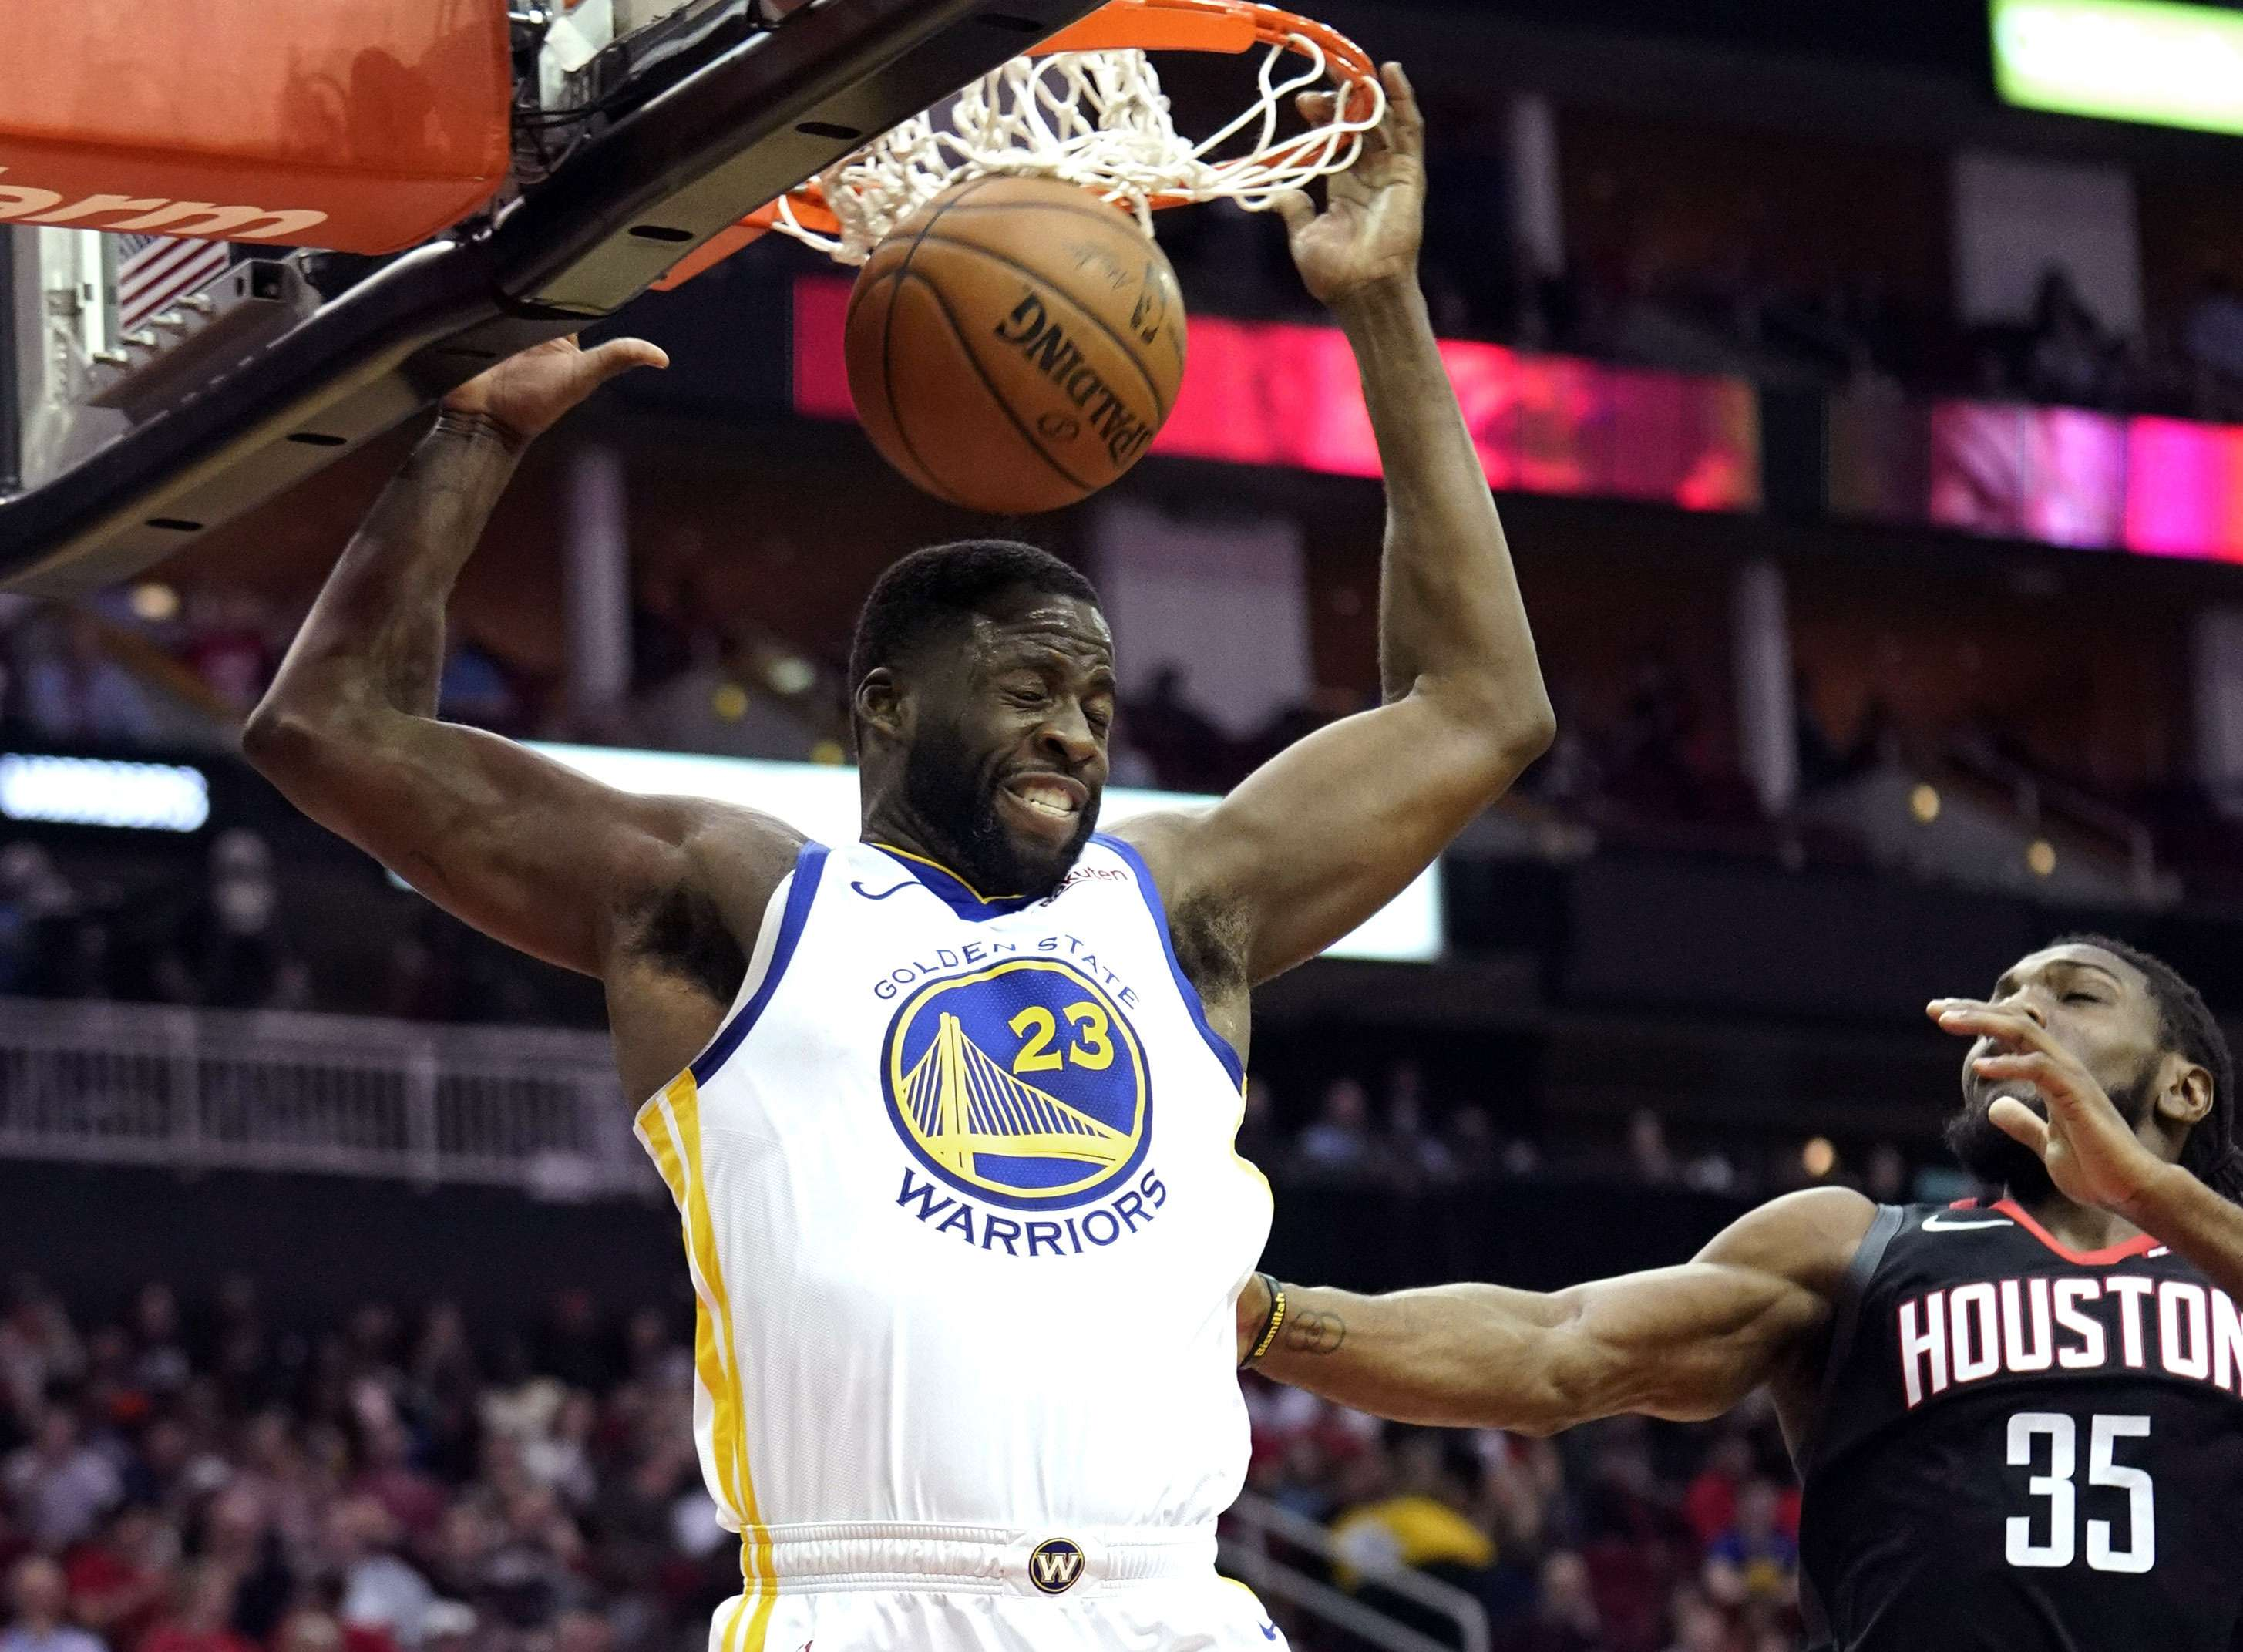 Thompson y Warriors frenan racha de Rockets